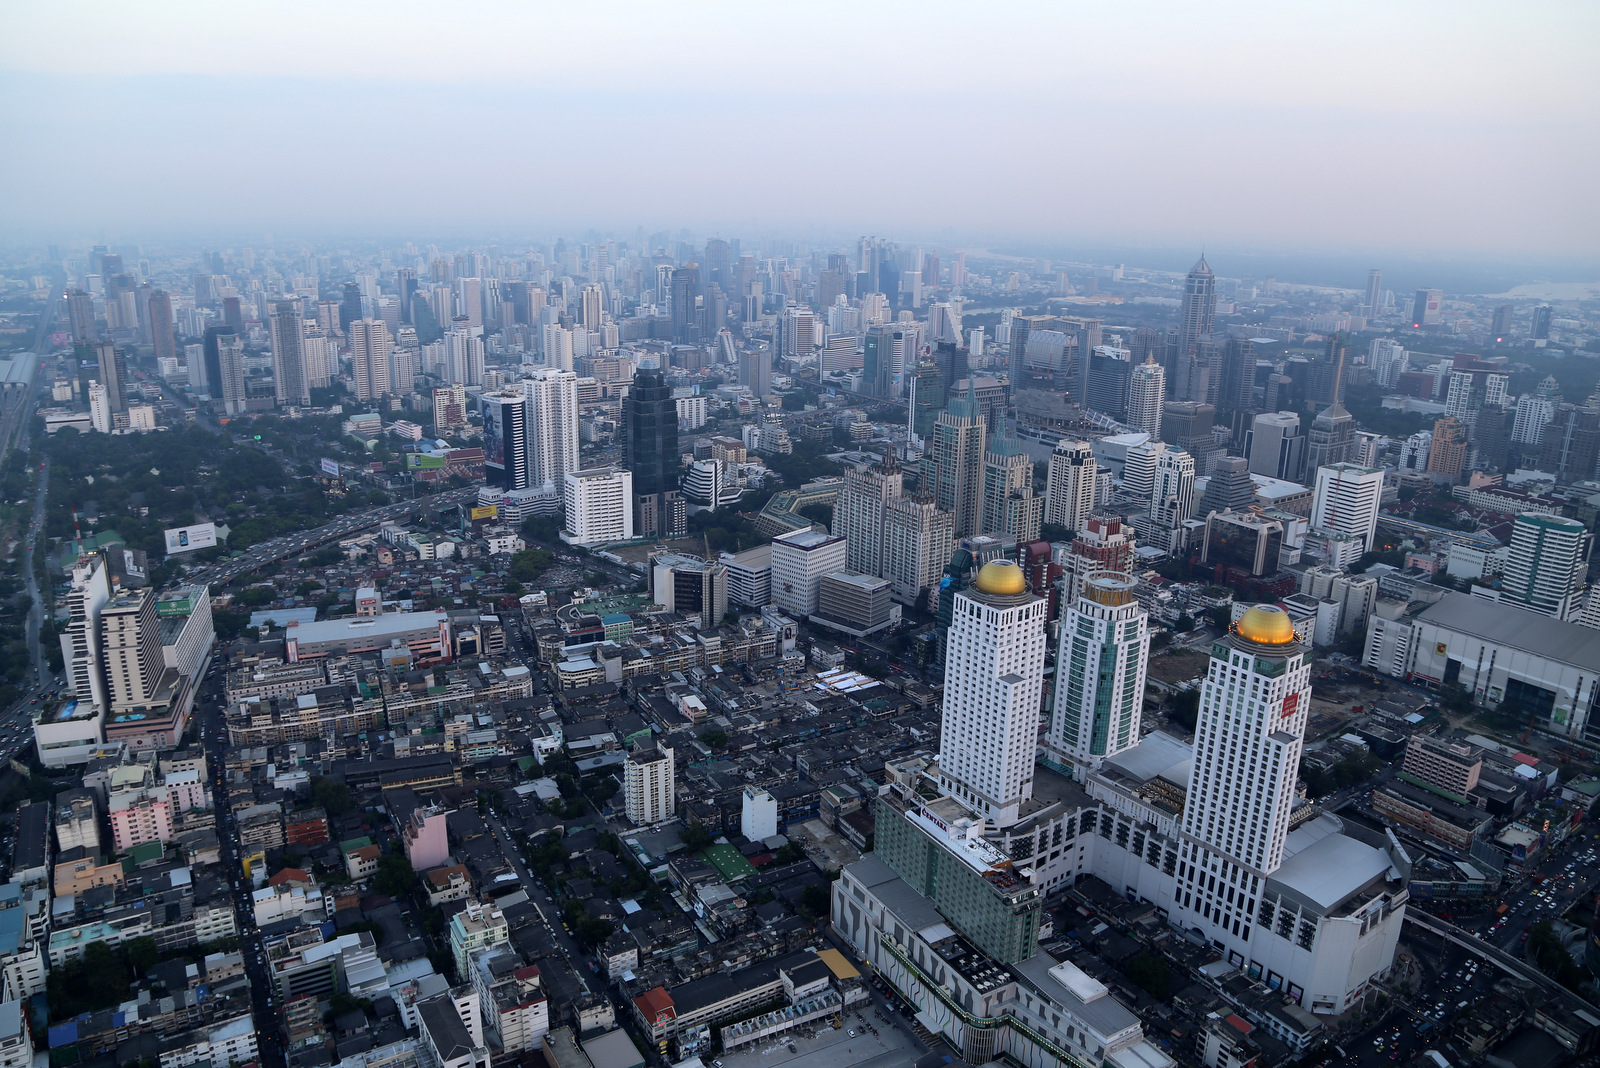 Bangkok from the top of Baiyoke Sky